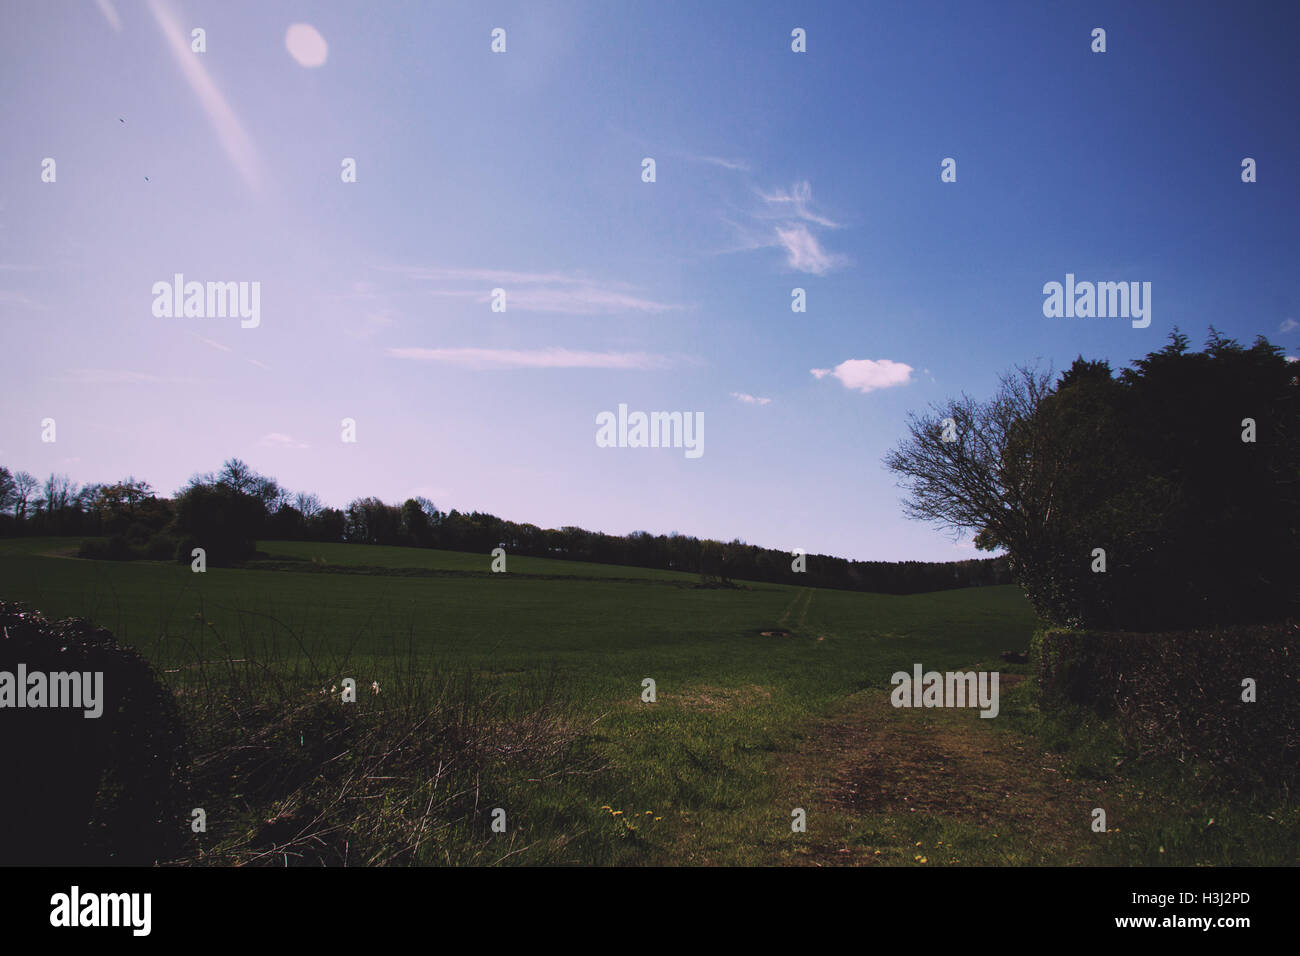 Blue sky over the countryside in the Chilterns Vintage Retro Filter. - Stock Image